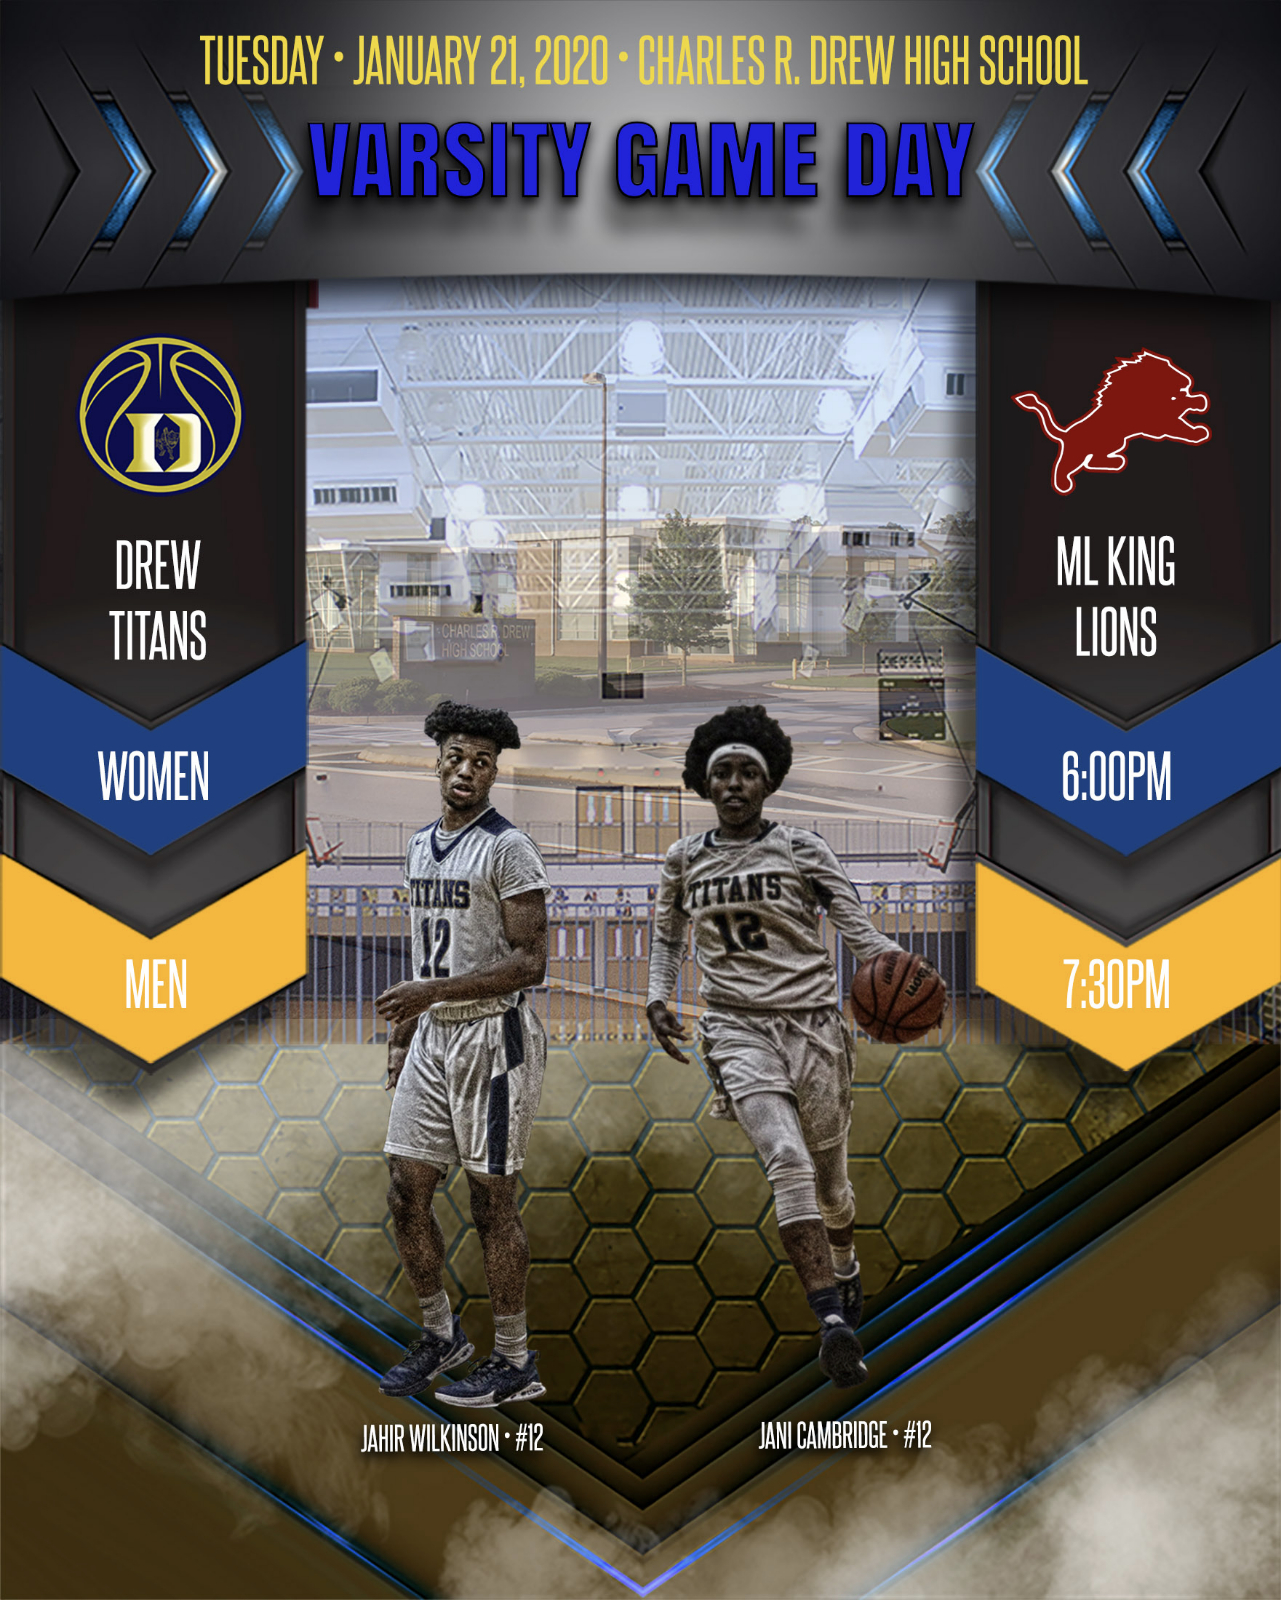 Gameday – Men's and Women's Varsity Basketball teams to host M.L. King this evening